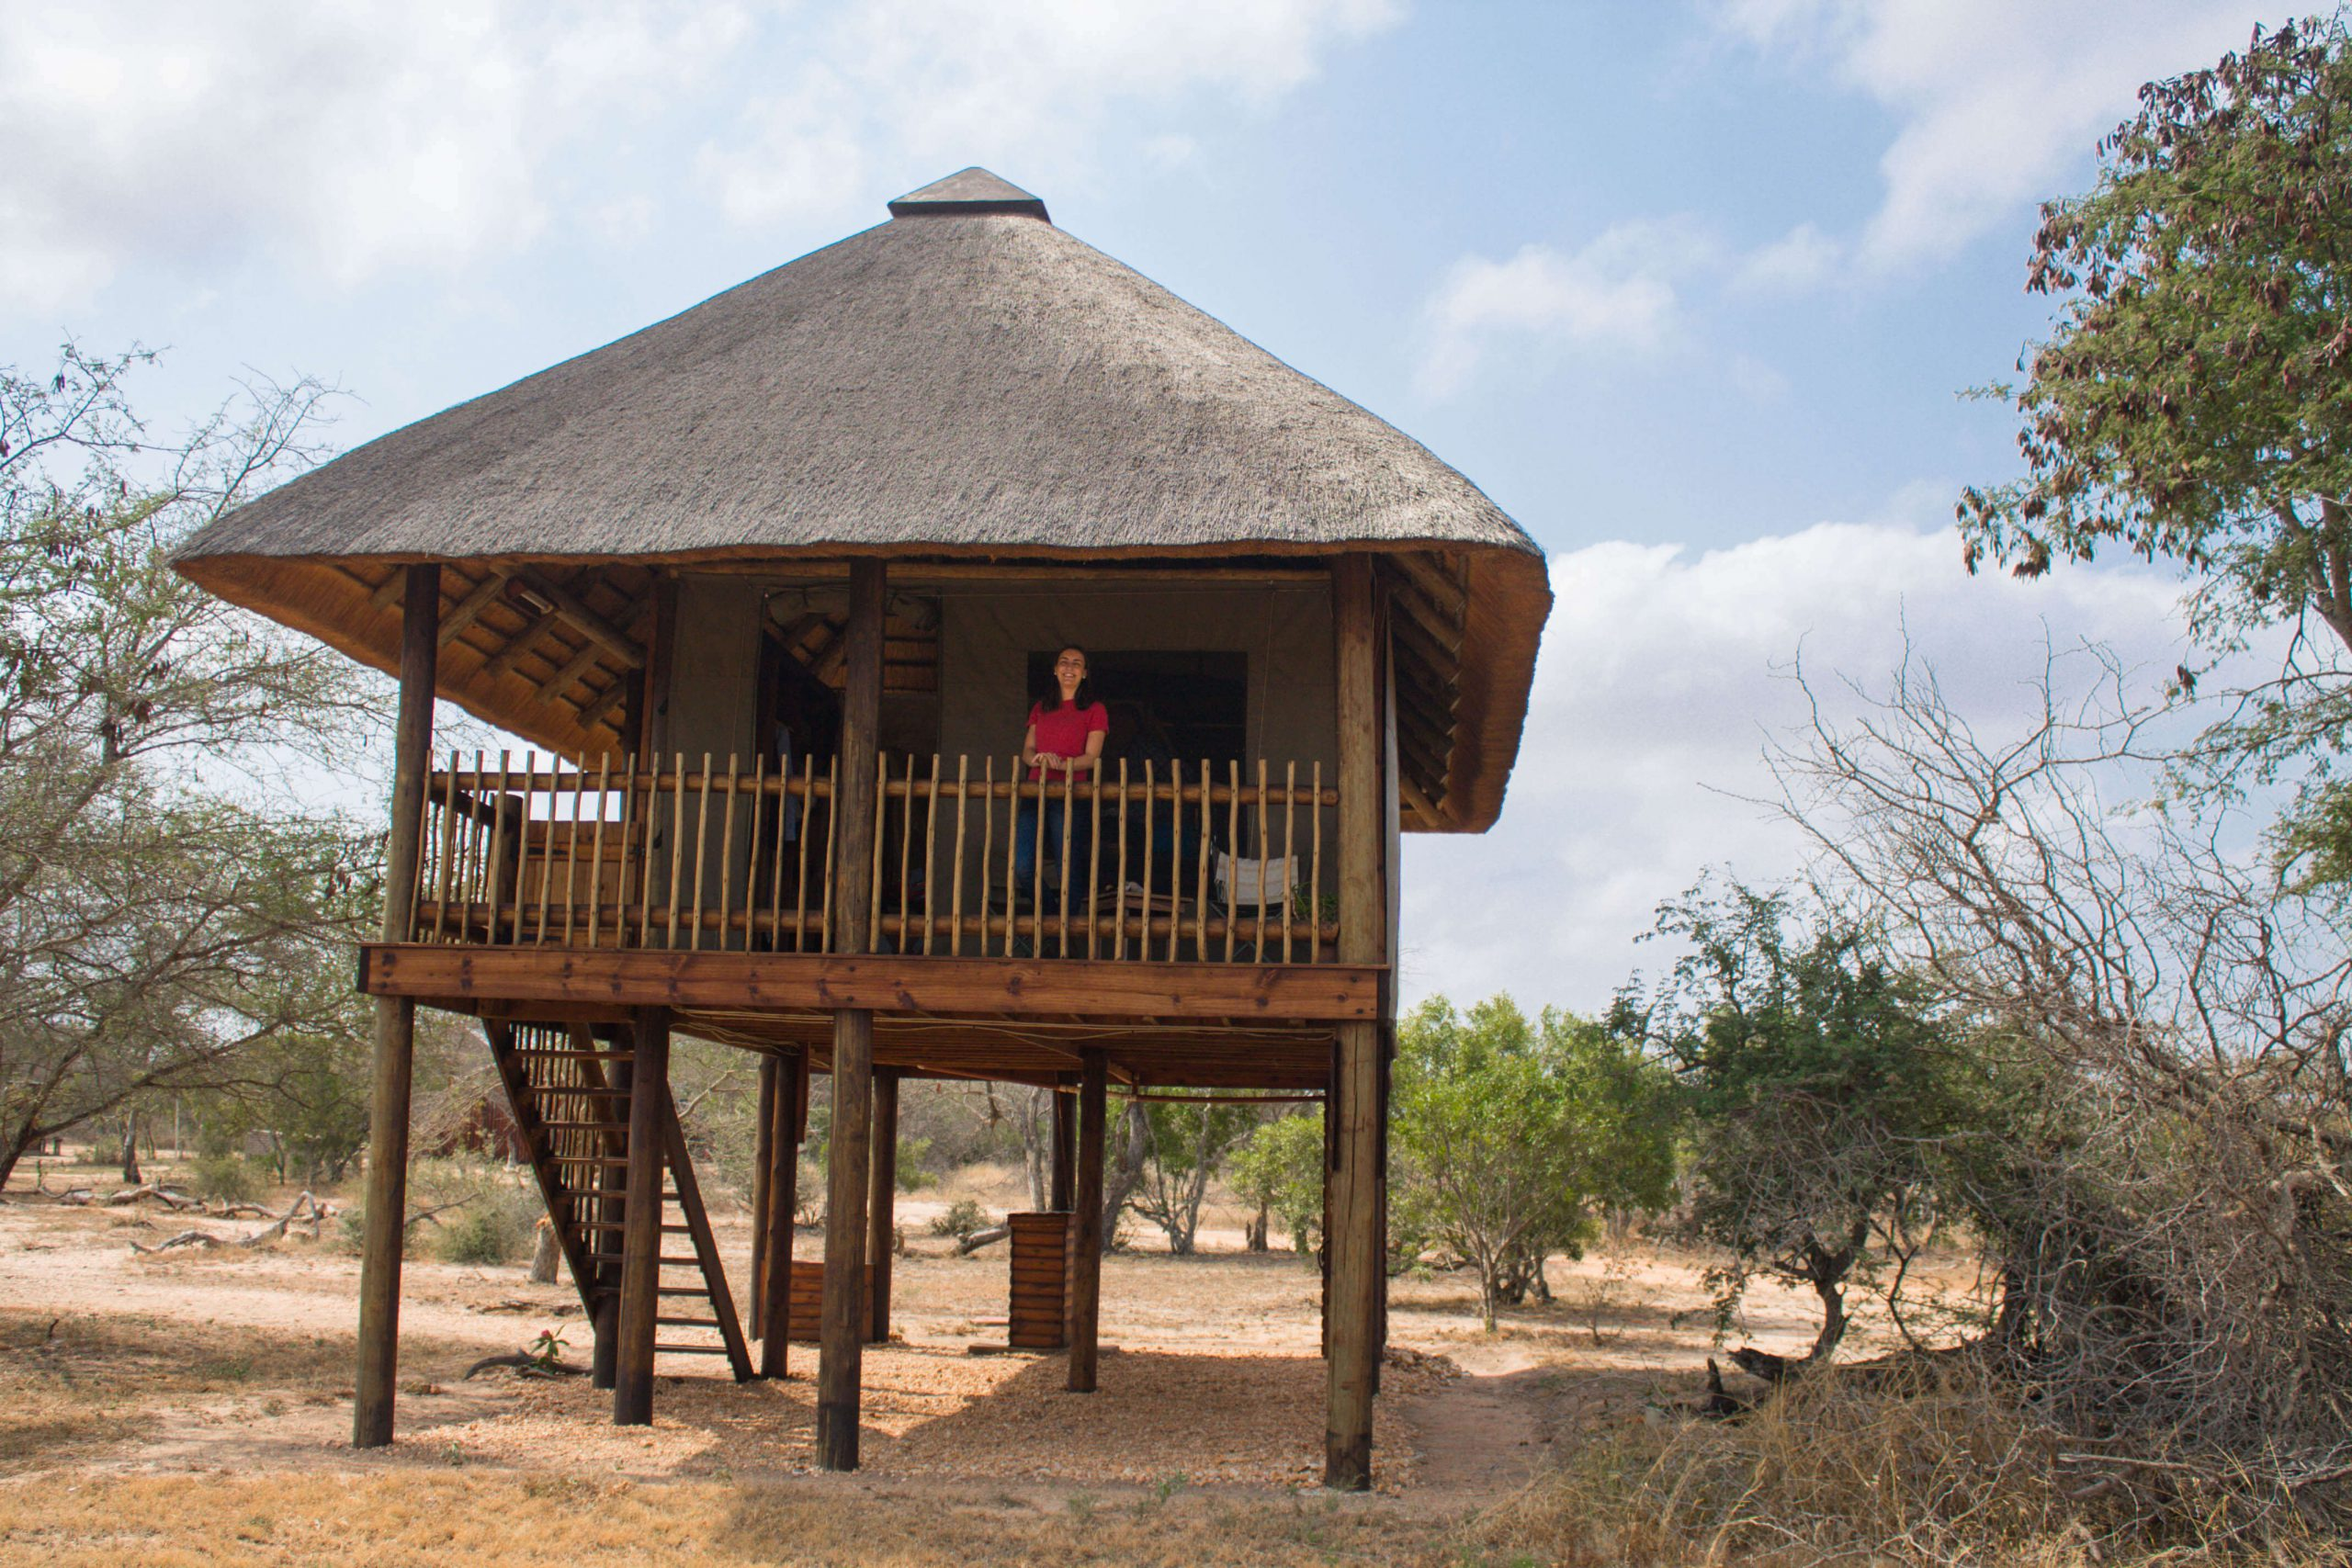 nThambo Tree Camp: treehouse in Kruger National Park, South Africa